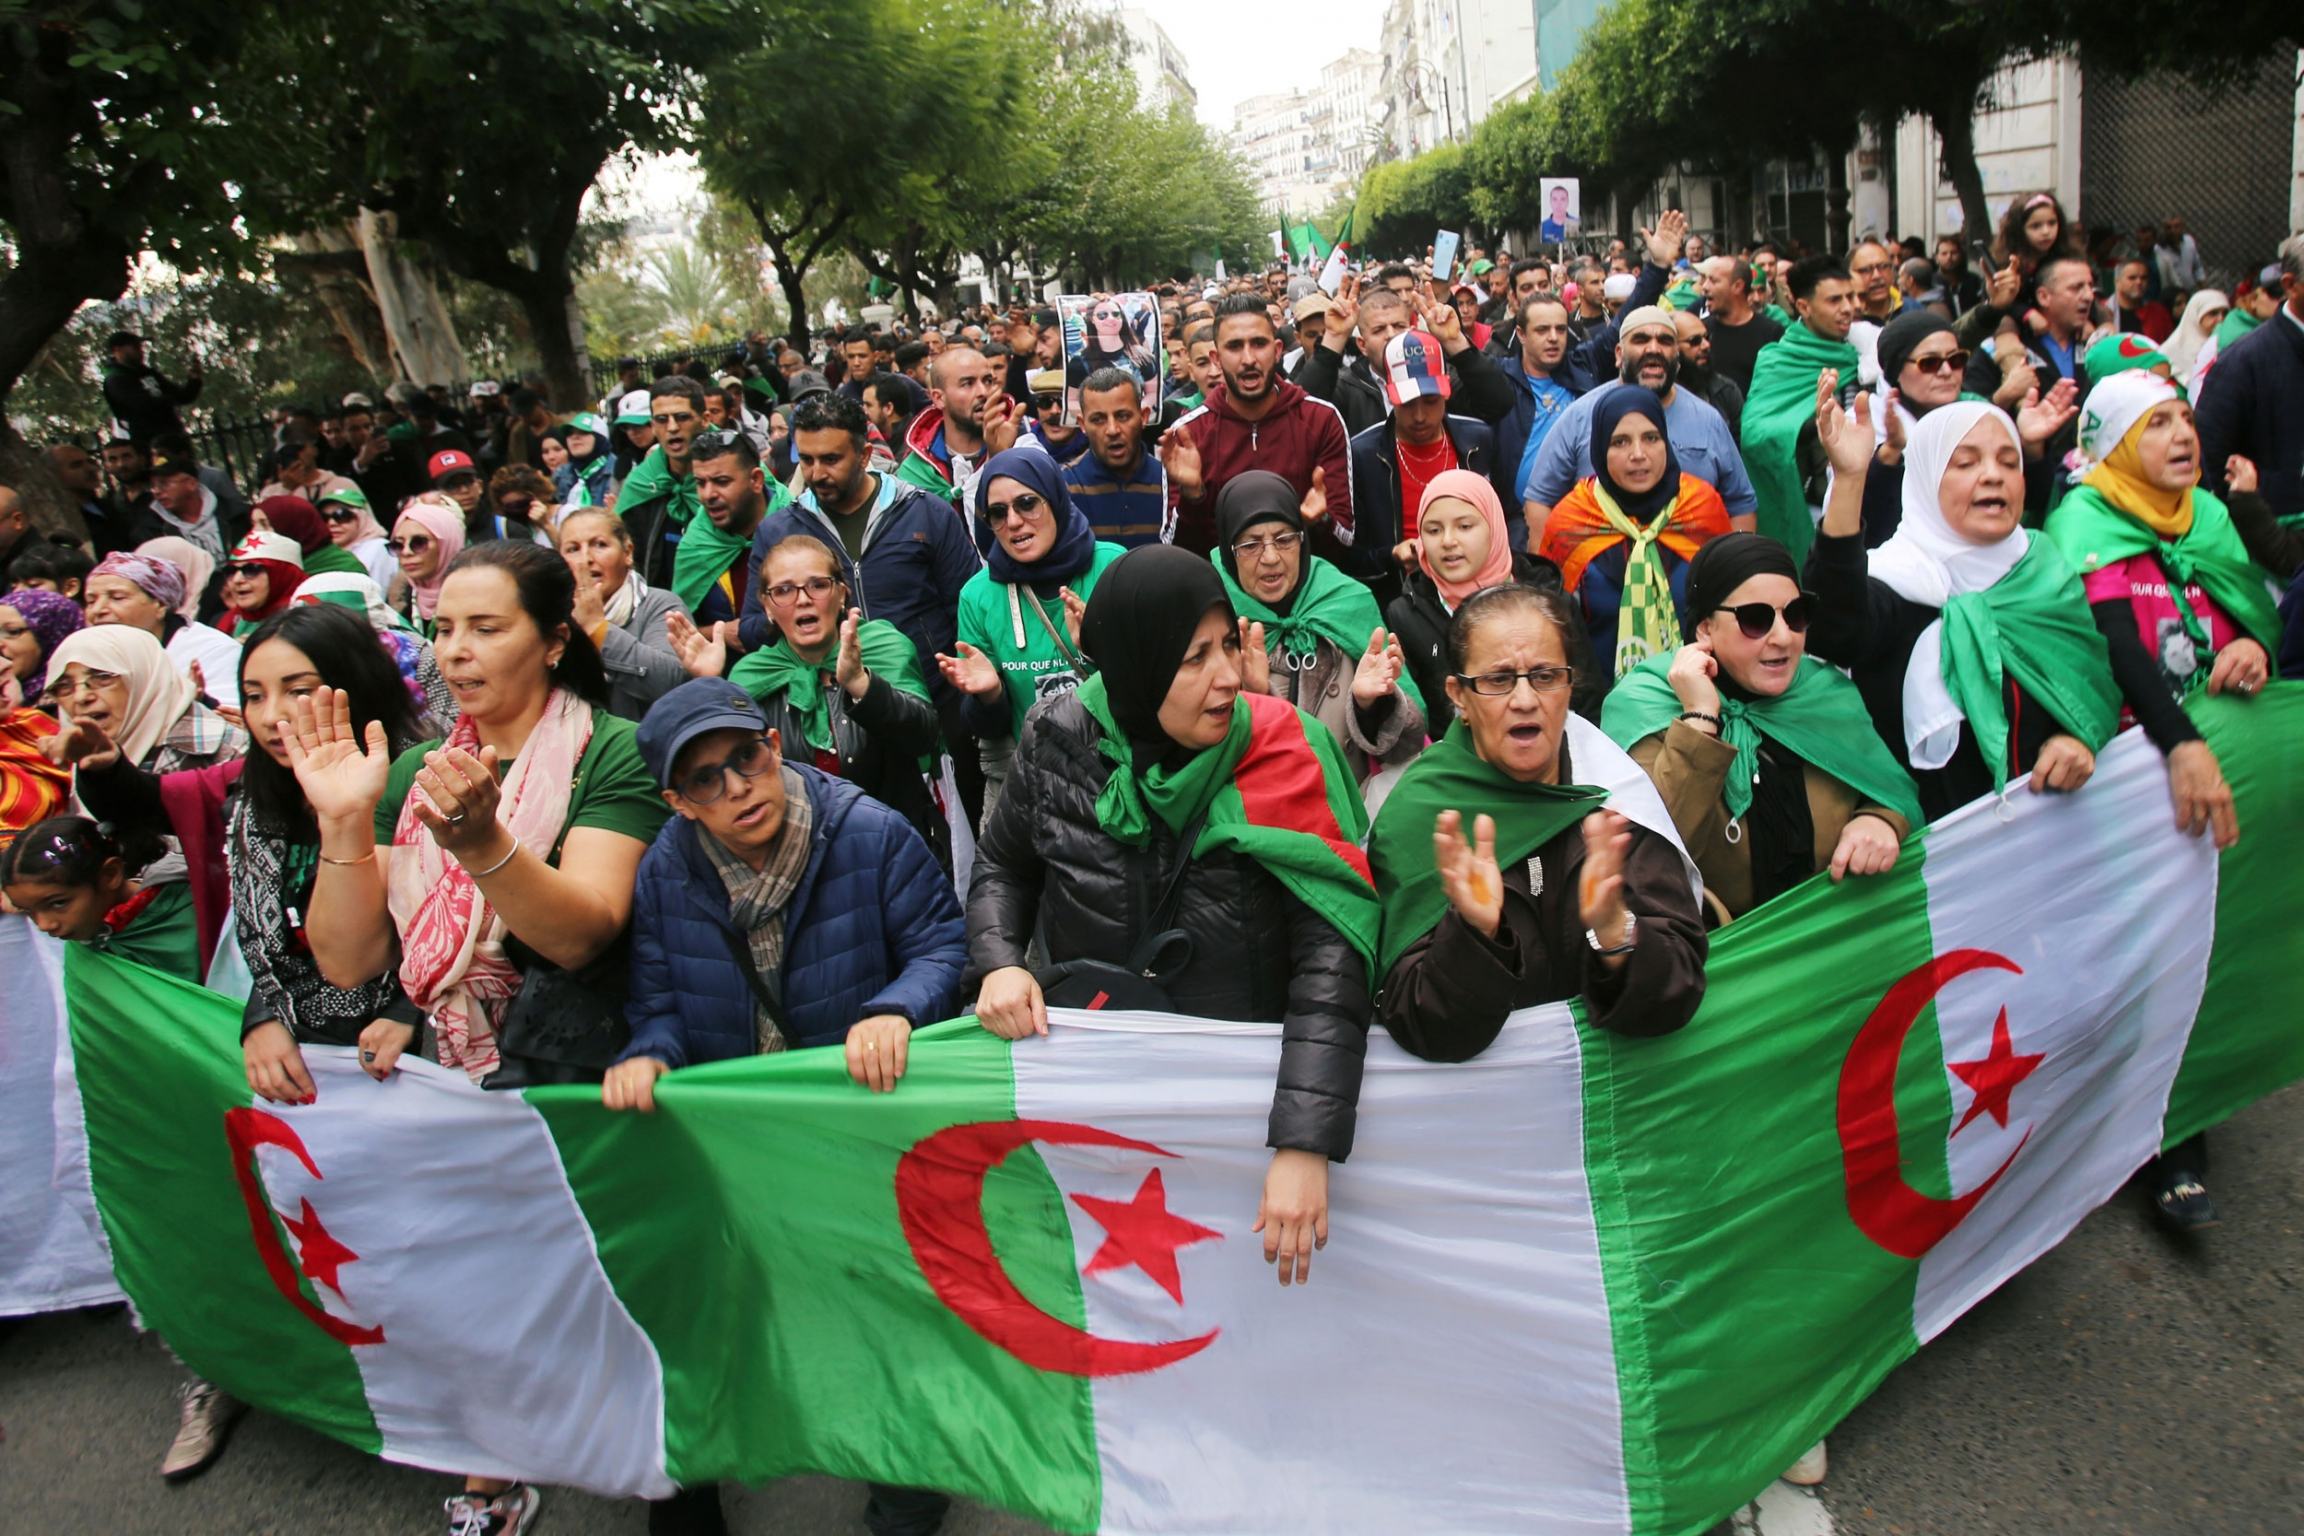 A large group of demonstrators are shown filling a street in Algiers with the Algerian flag in front of them.